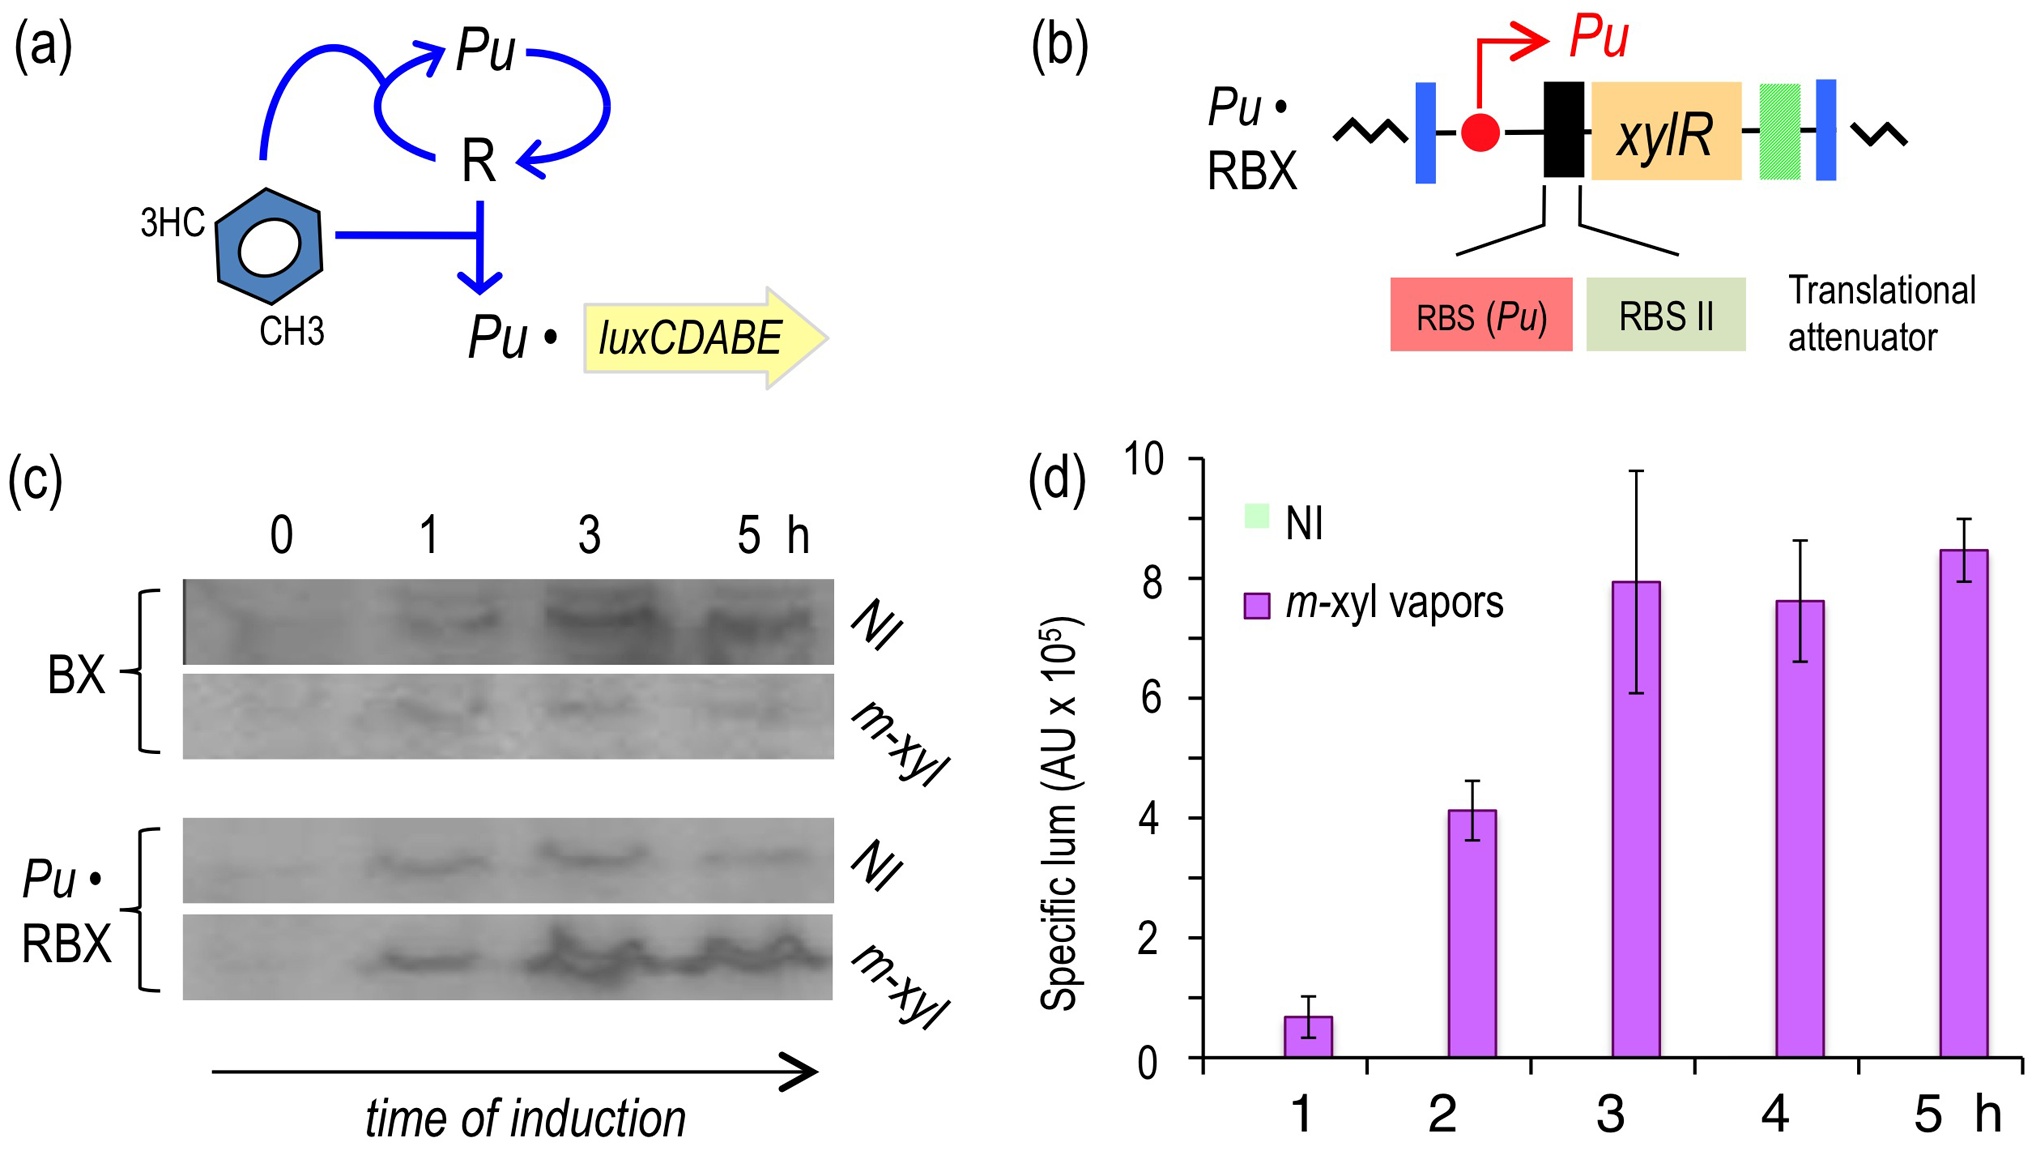 Subjecting expression of XylR to a positive feedback loop (PFL) based on <i>Pu</i>.